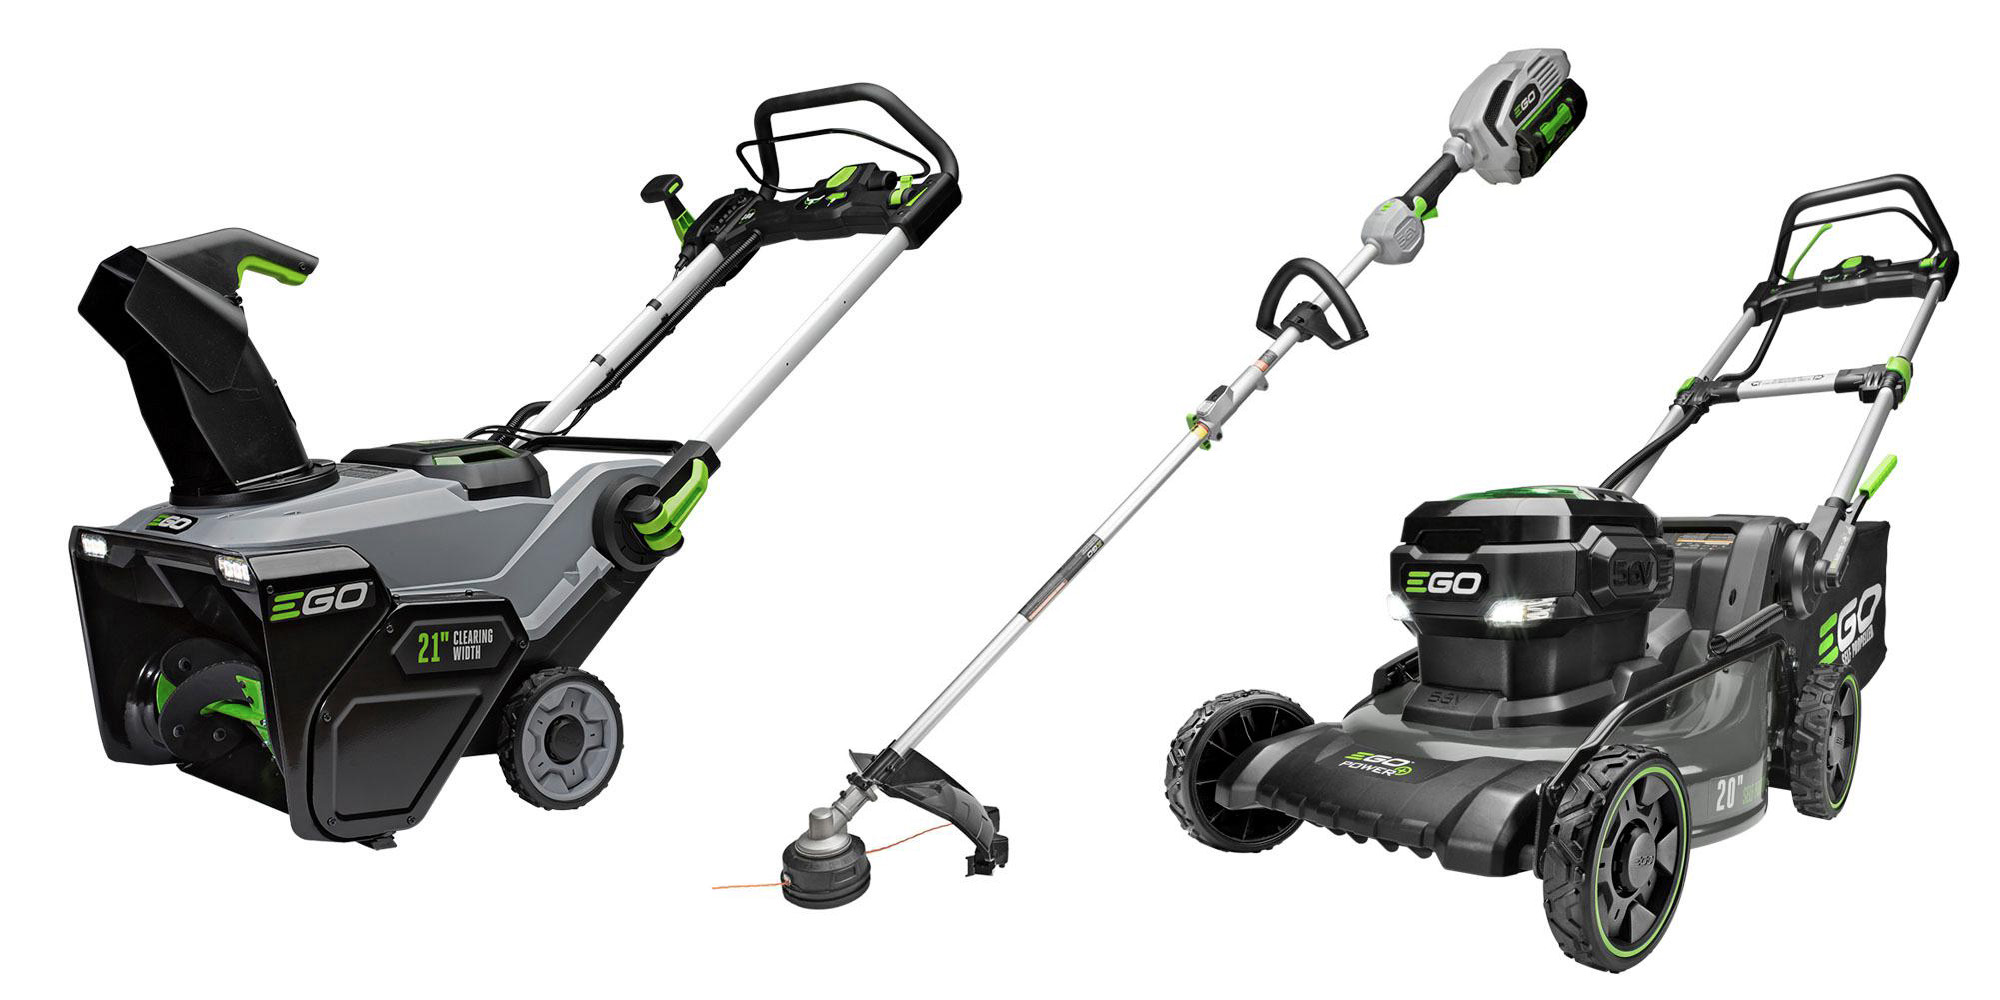 Electric Lawn Mower Sale Home Depot 1 Day Ego Karcher Electric Tool Sale Takes 25 Off